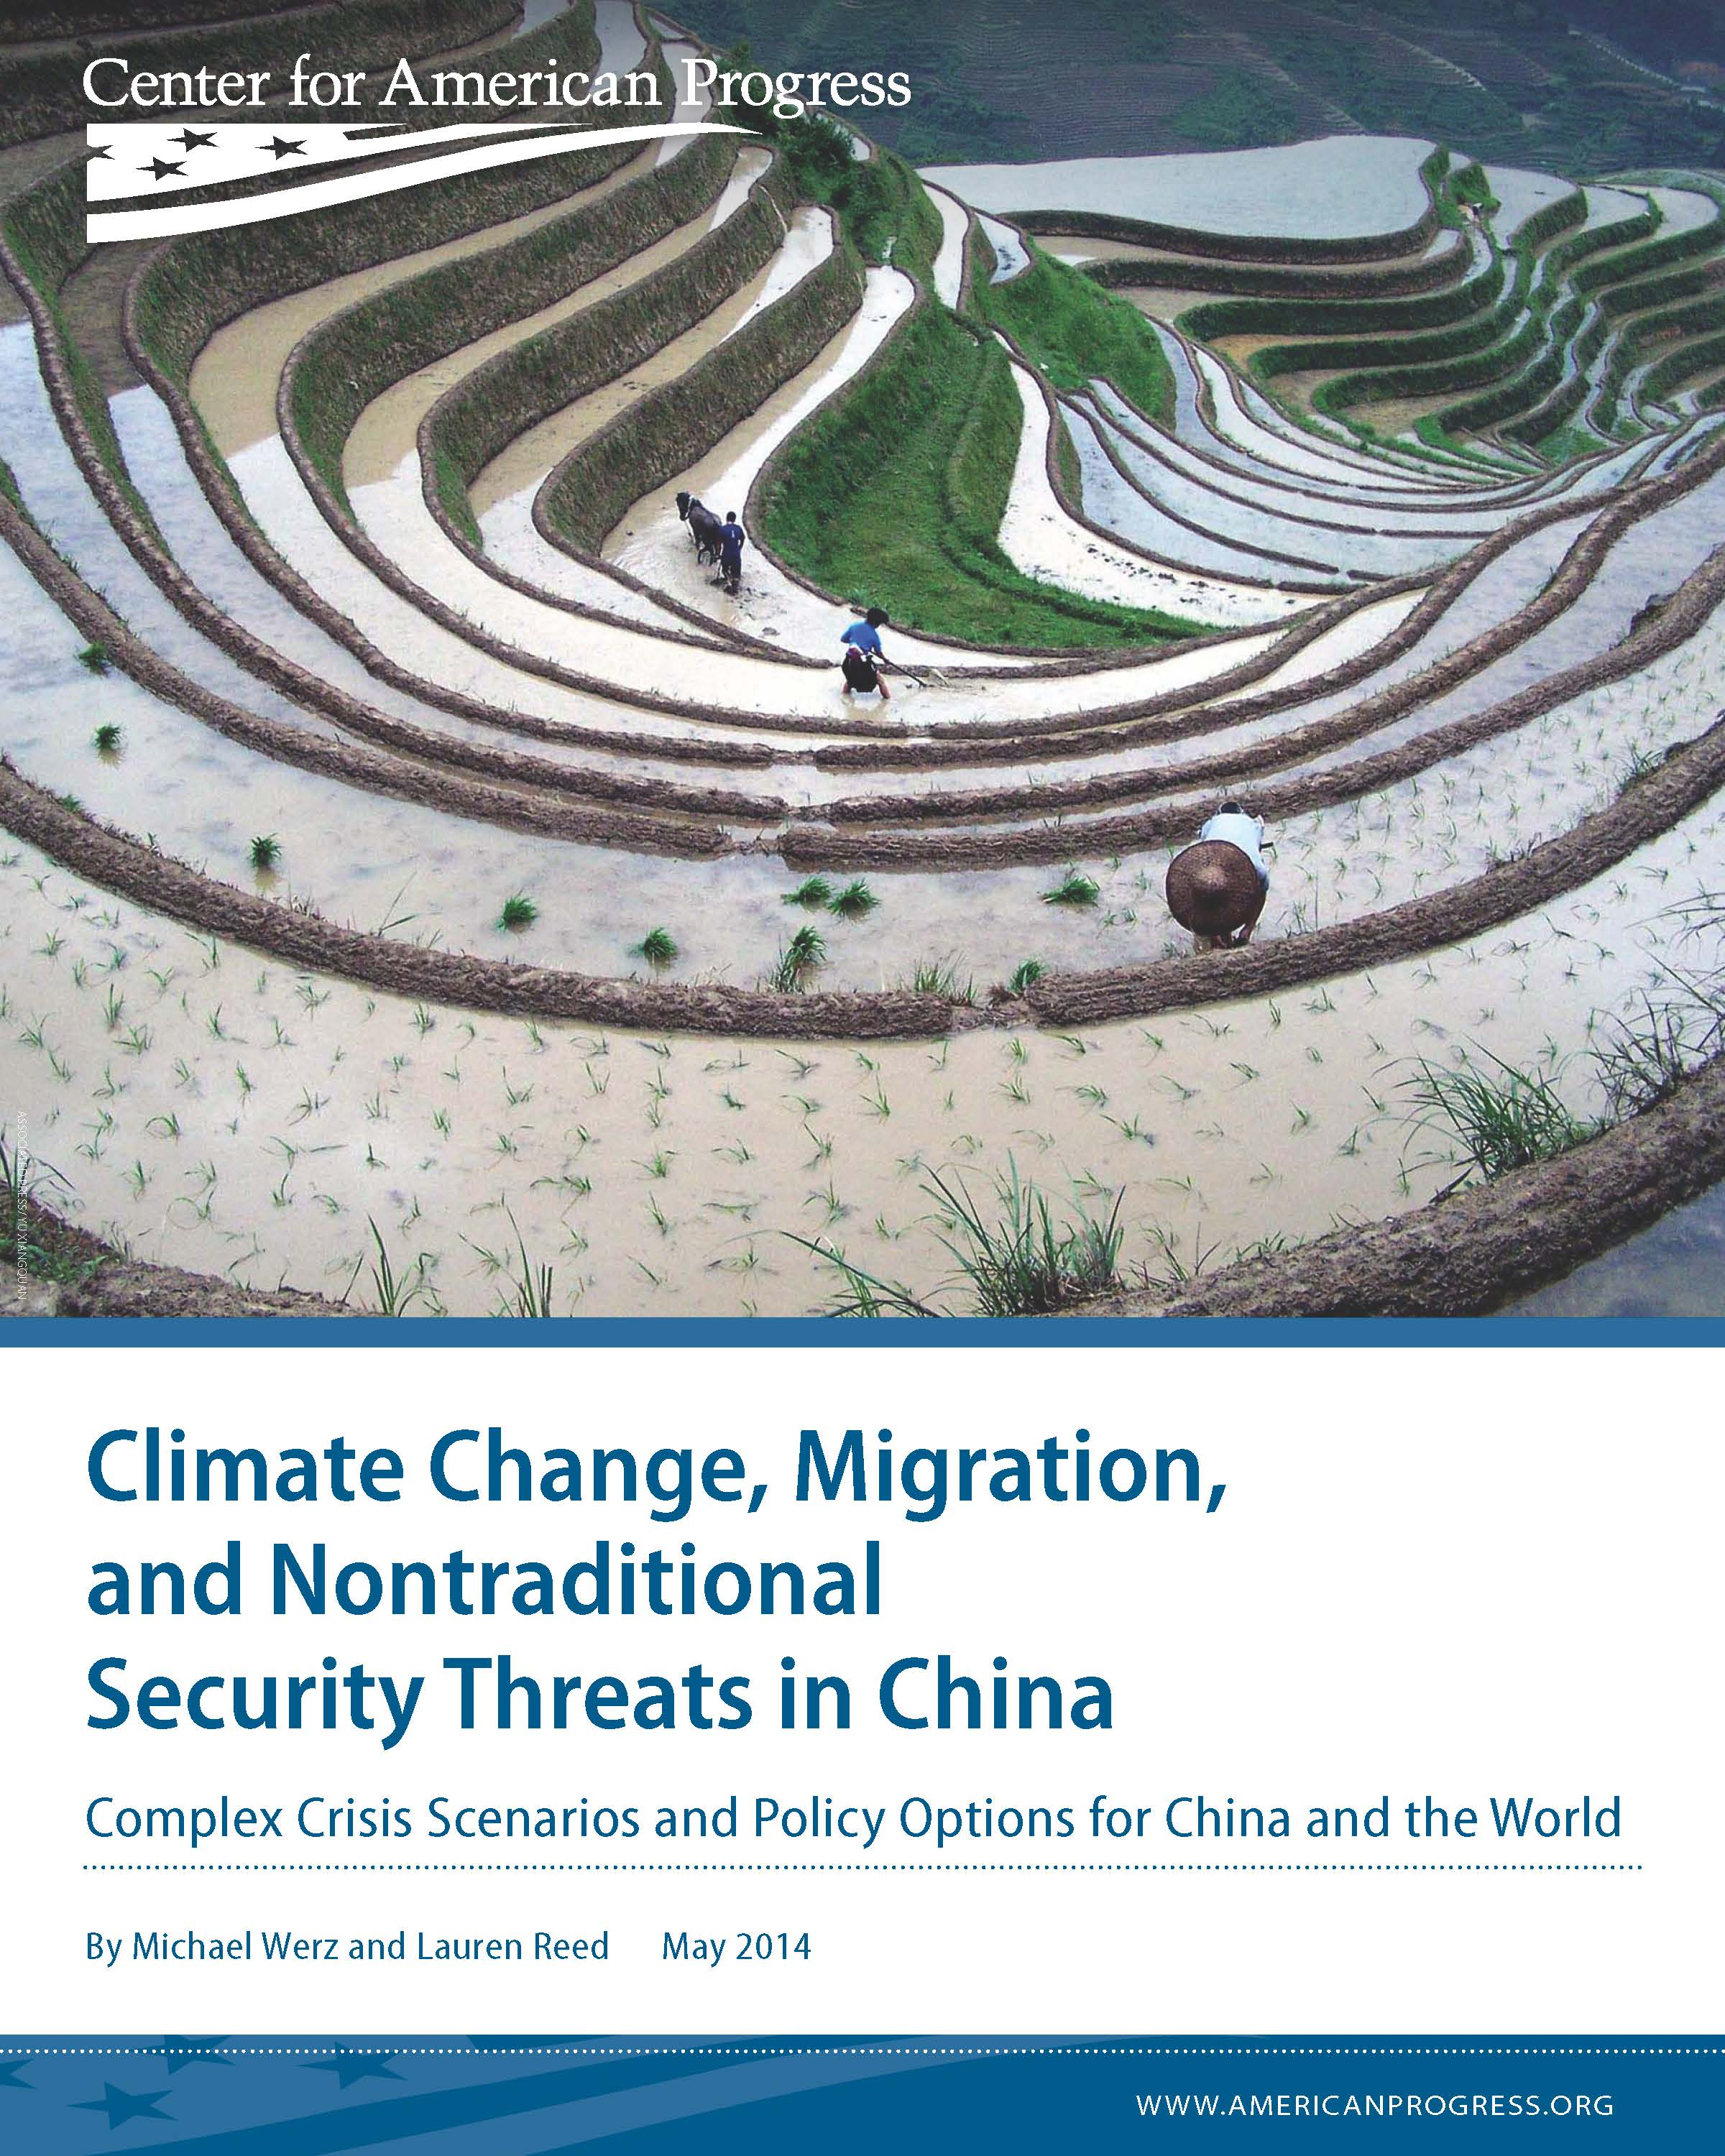 Climate Change, Migration, and Nontraditional Security Threats in China